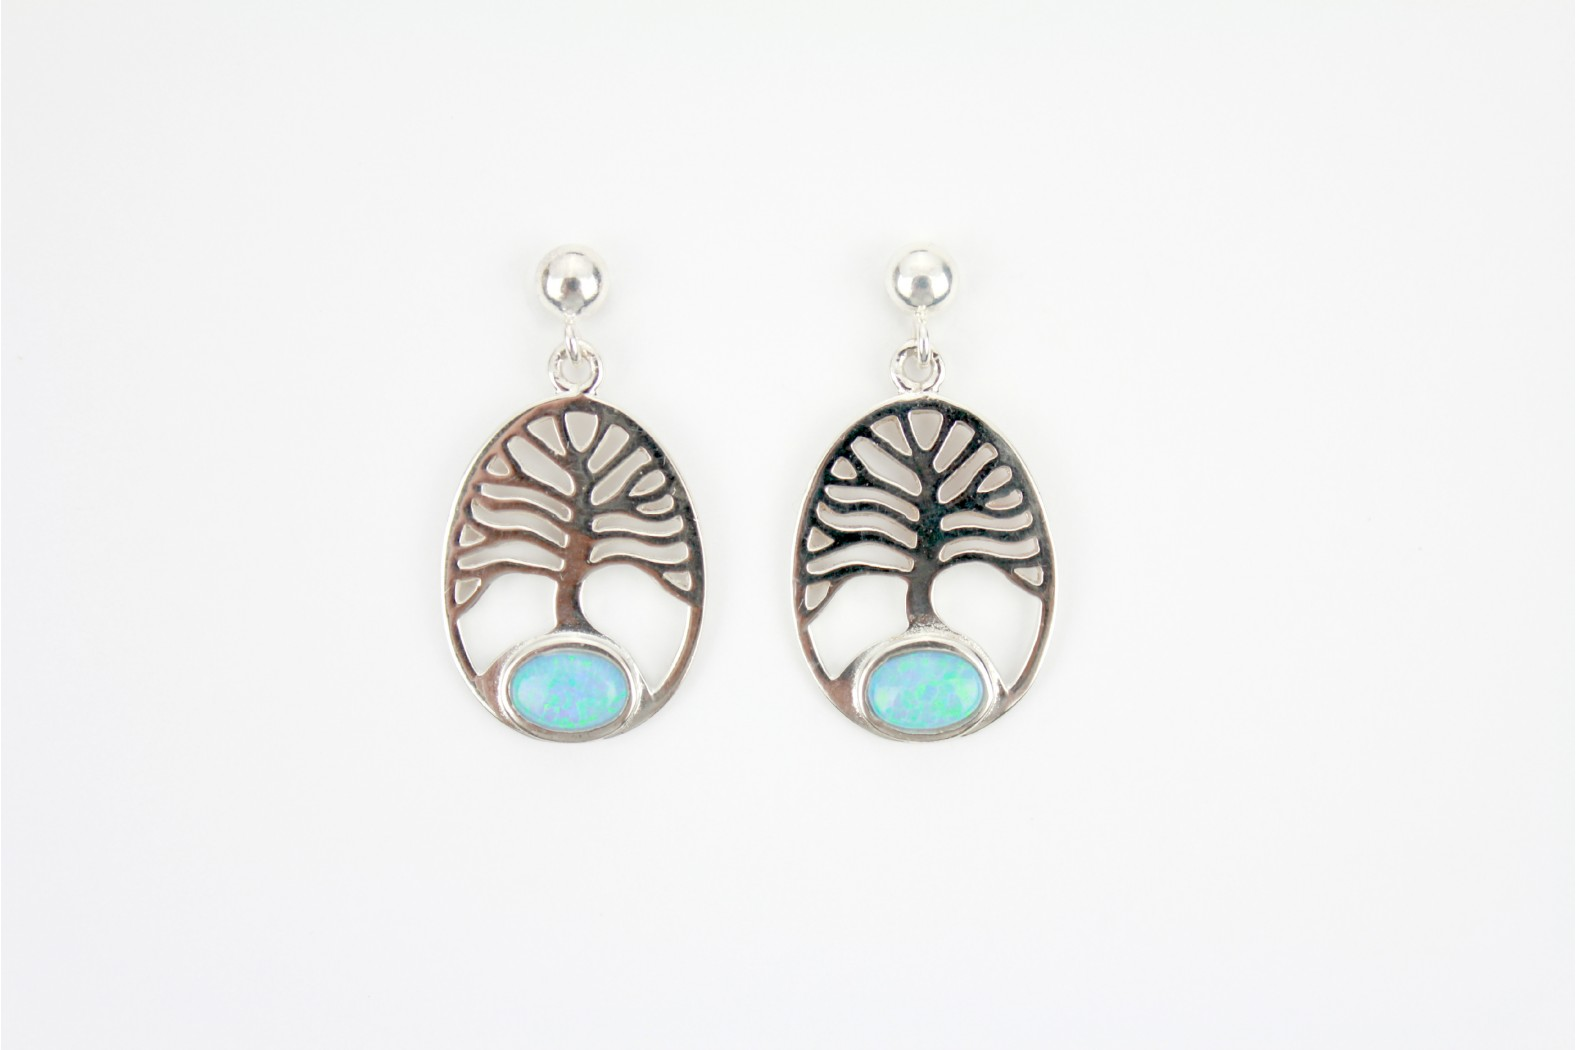 Drop Stud Tree of Life embellished with Blue Opal Fire silver set earrings. TEMPORARILY OUT OF STOCK.